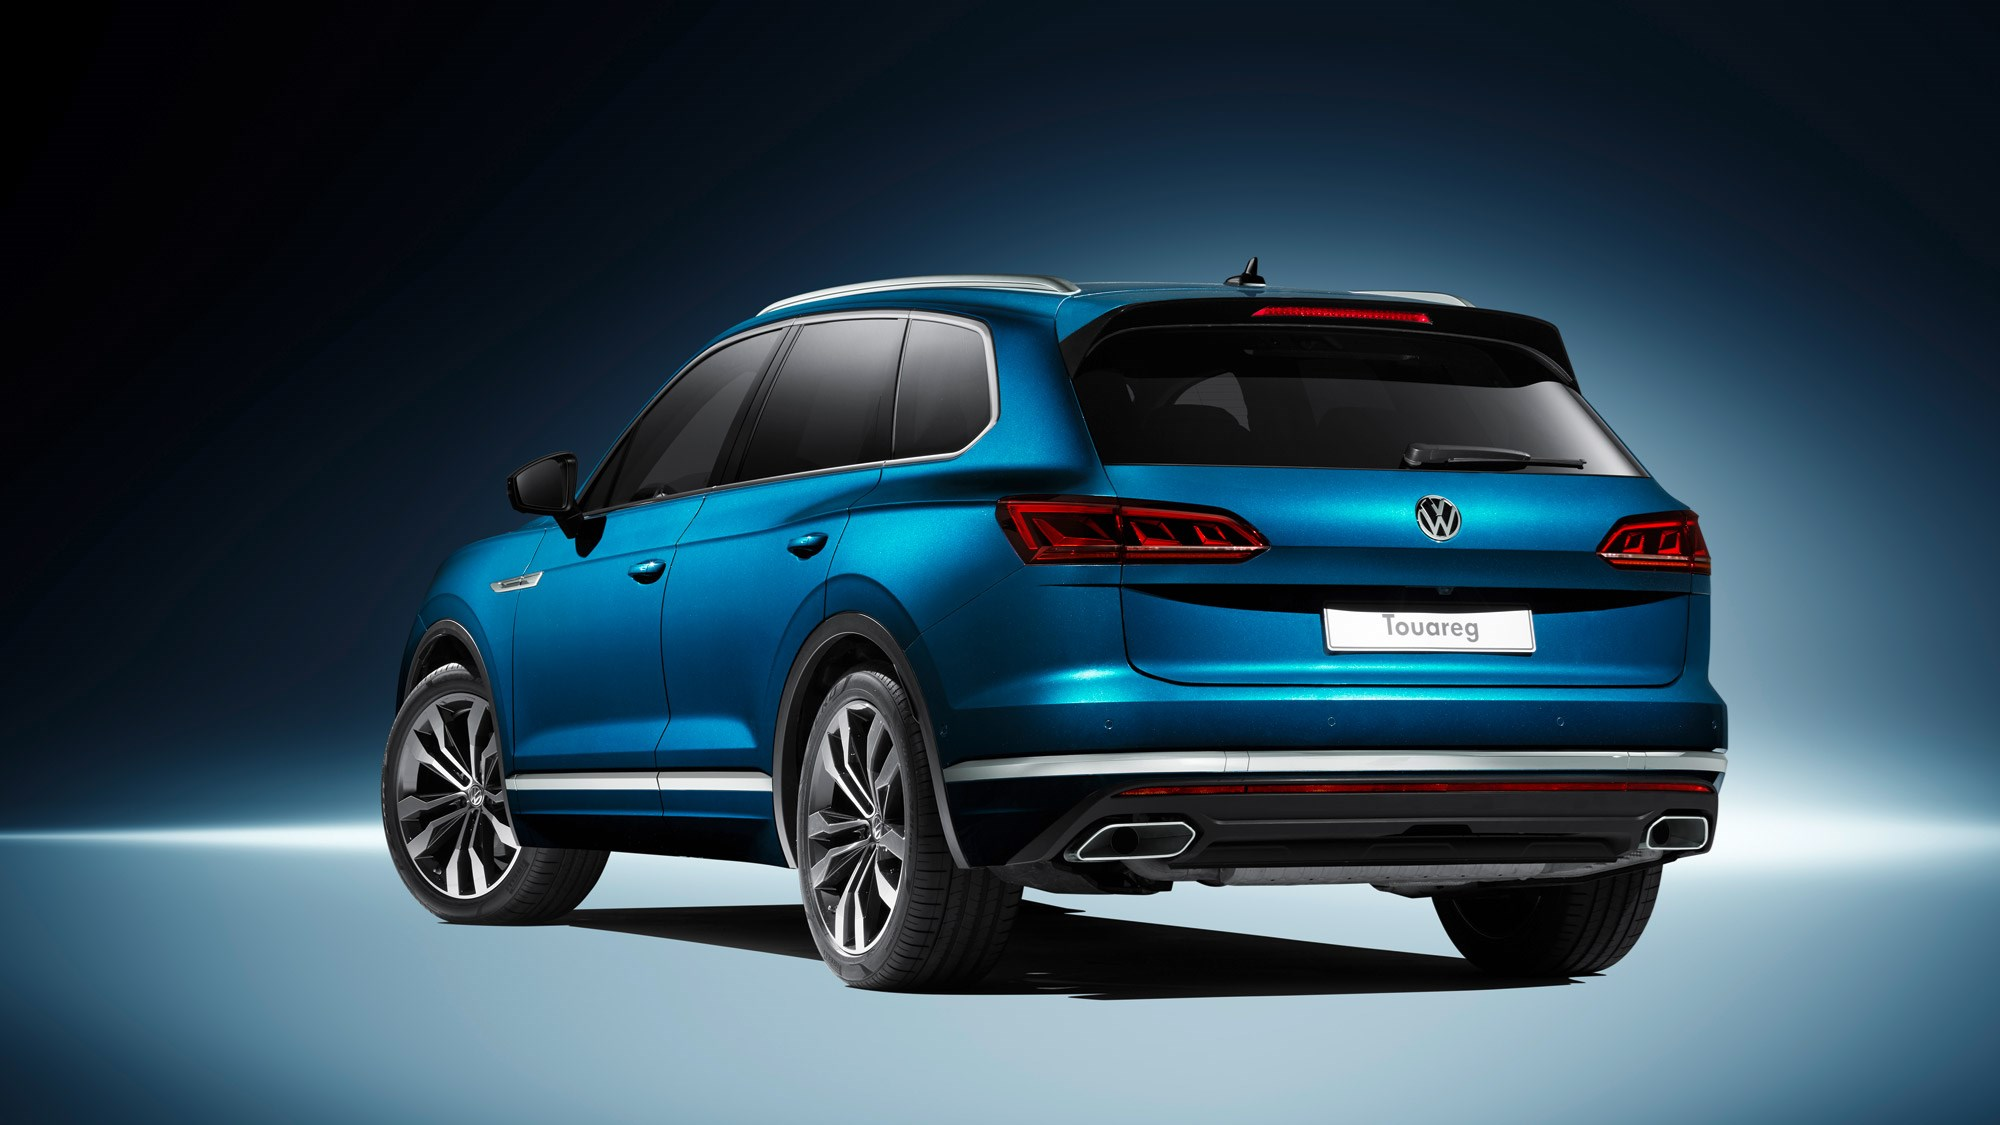 new vw touareg techy flagship suv revealed in beijing by car magazine. Black Bedroom Furniture Sets. Home Design Ideas